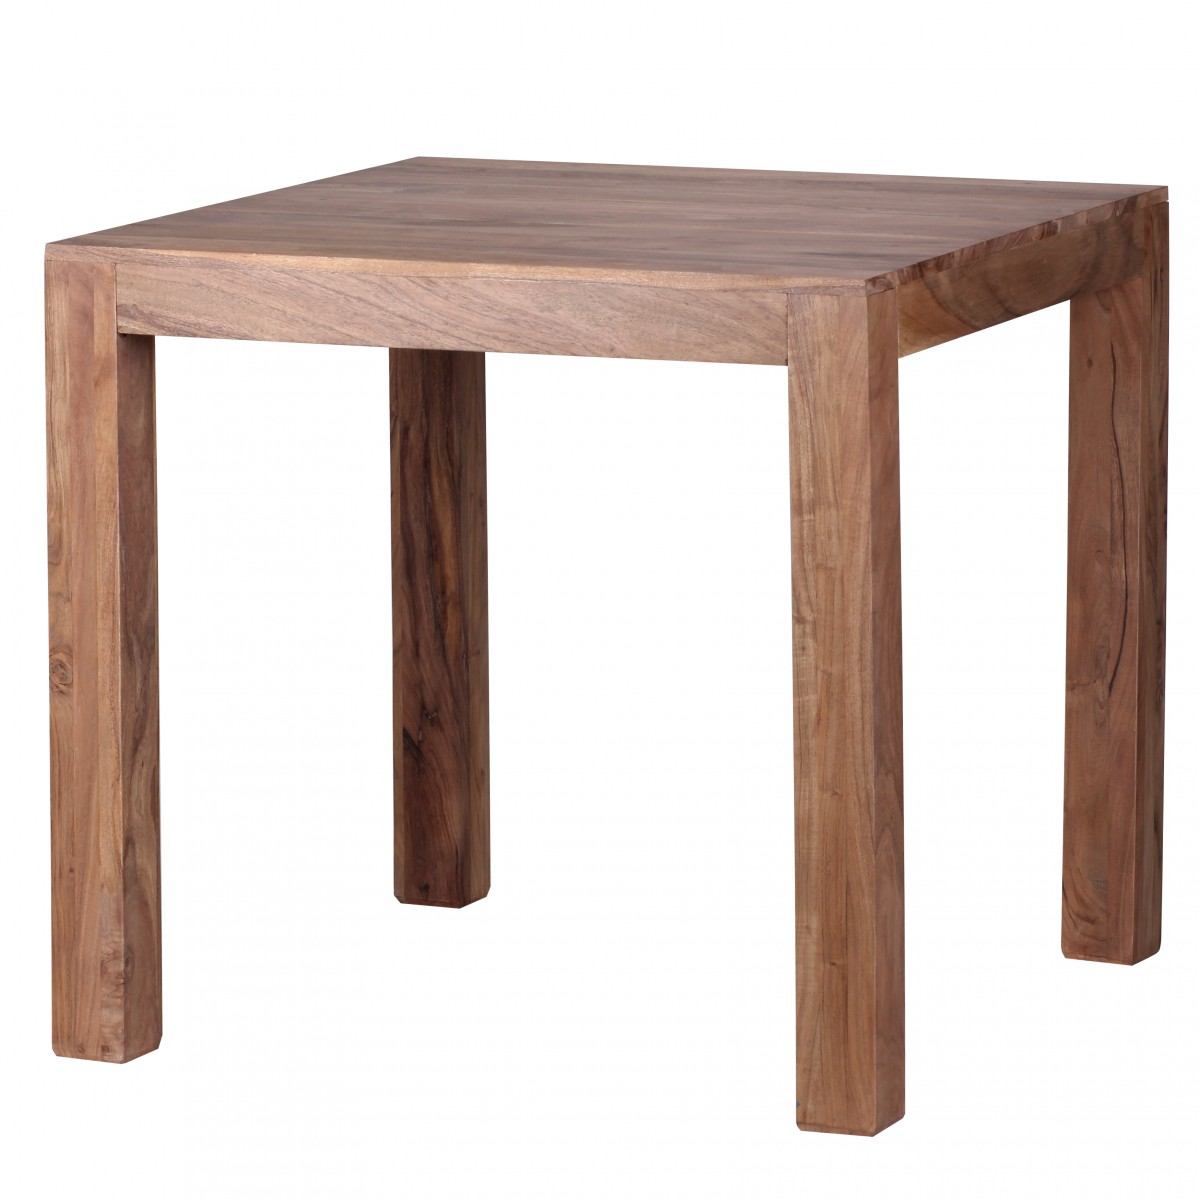 Wohnling conception table manger carr 80 x 80 cm acacia massif de feuillus - Table en acacia massif ...